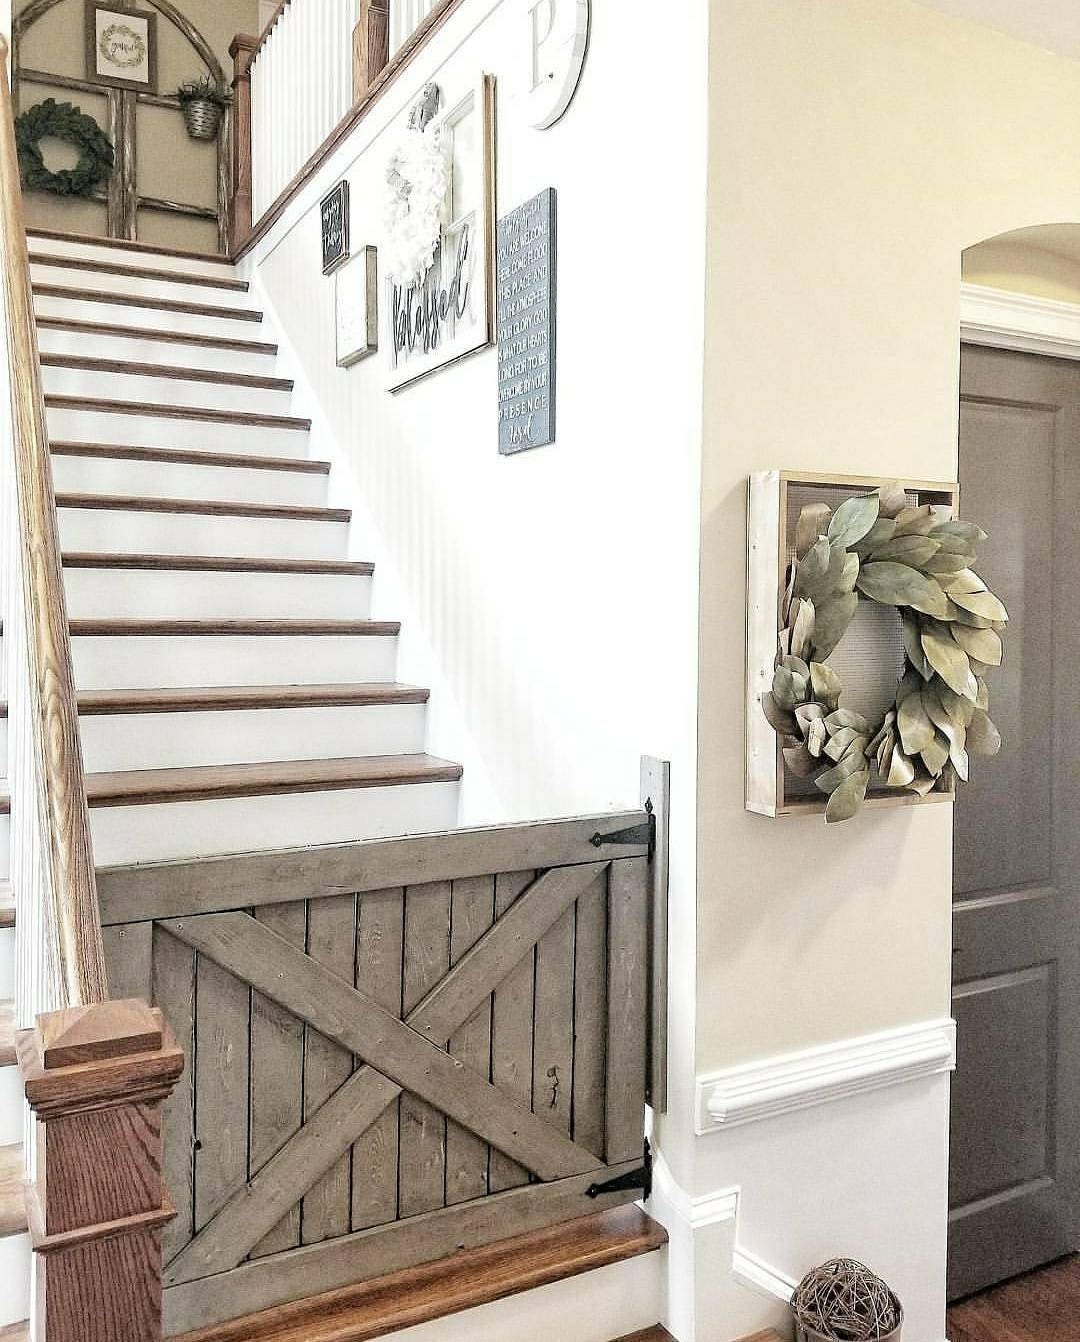 Barn Door Baby Gate Gray Distressed